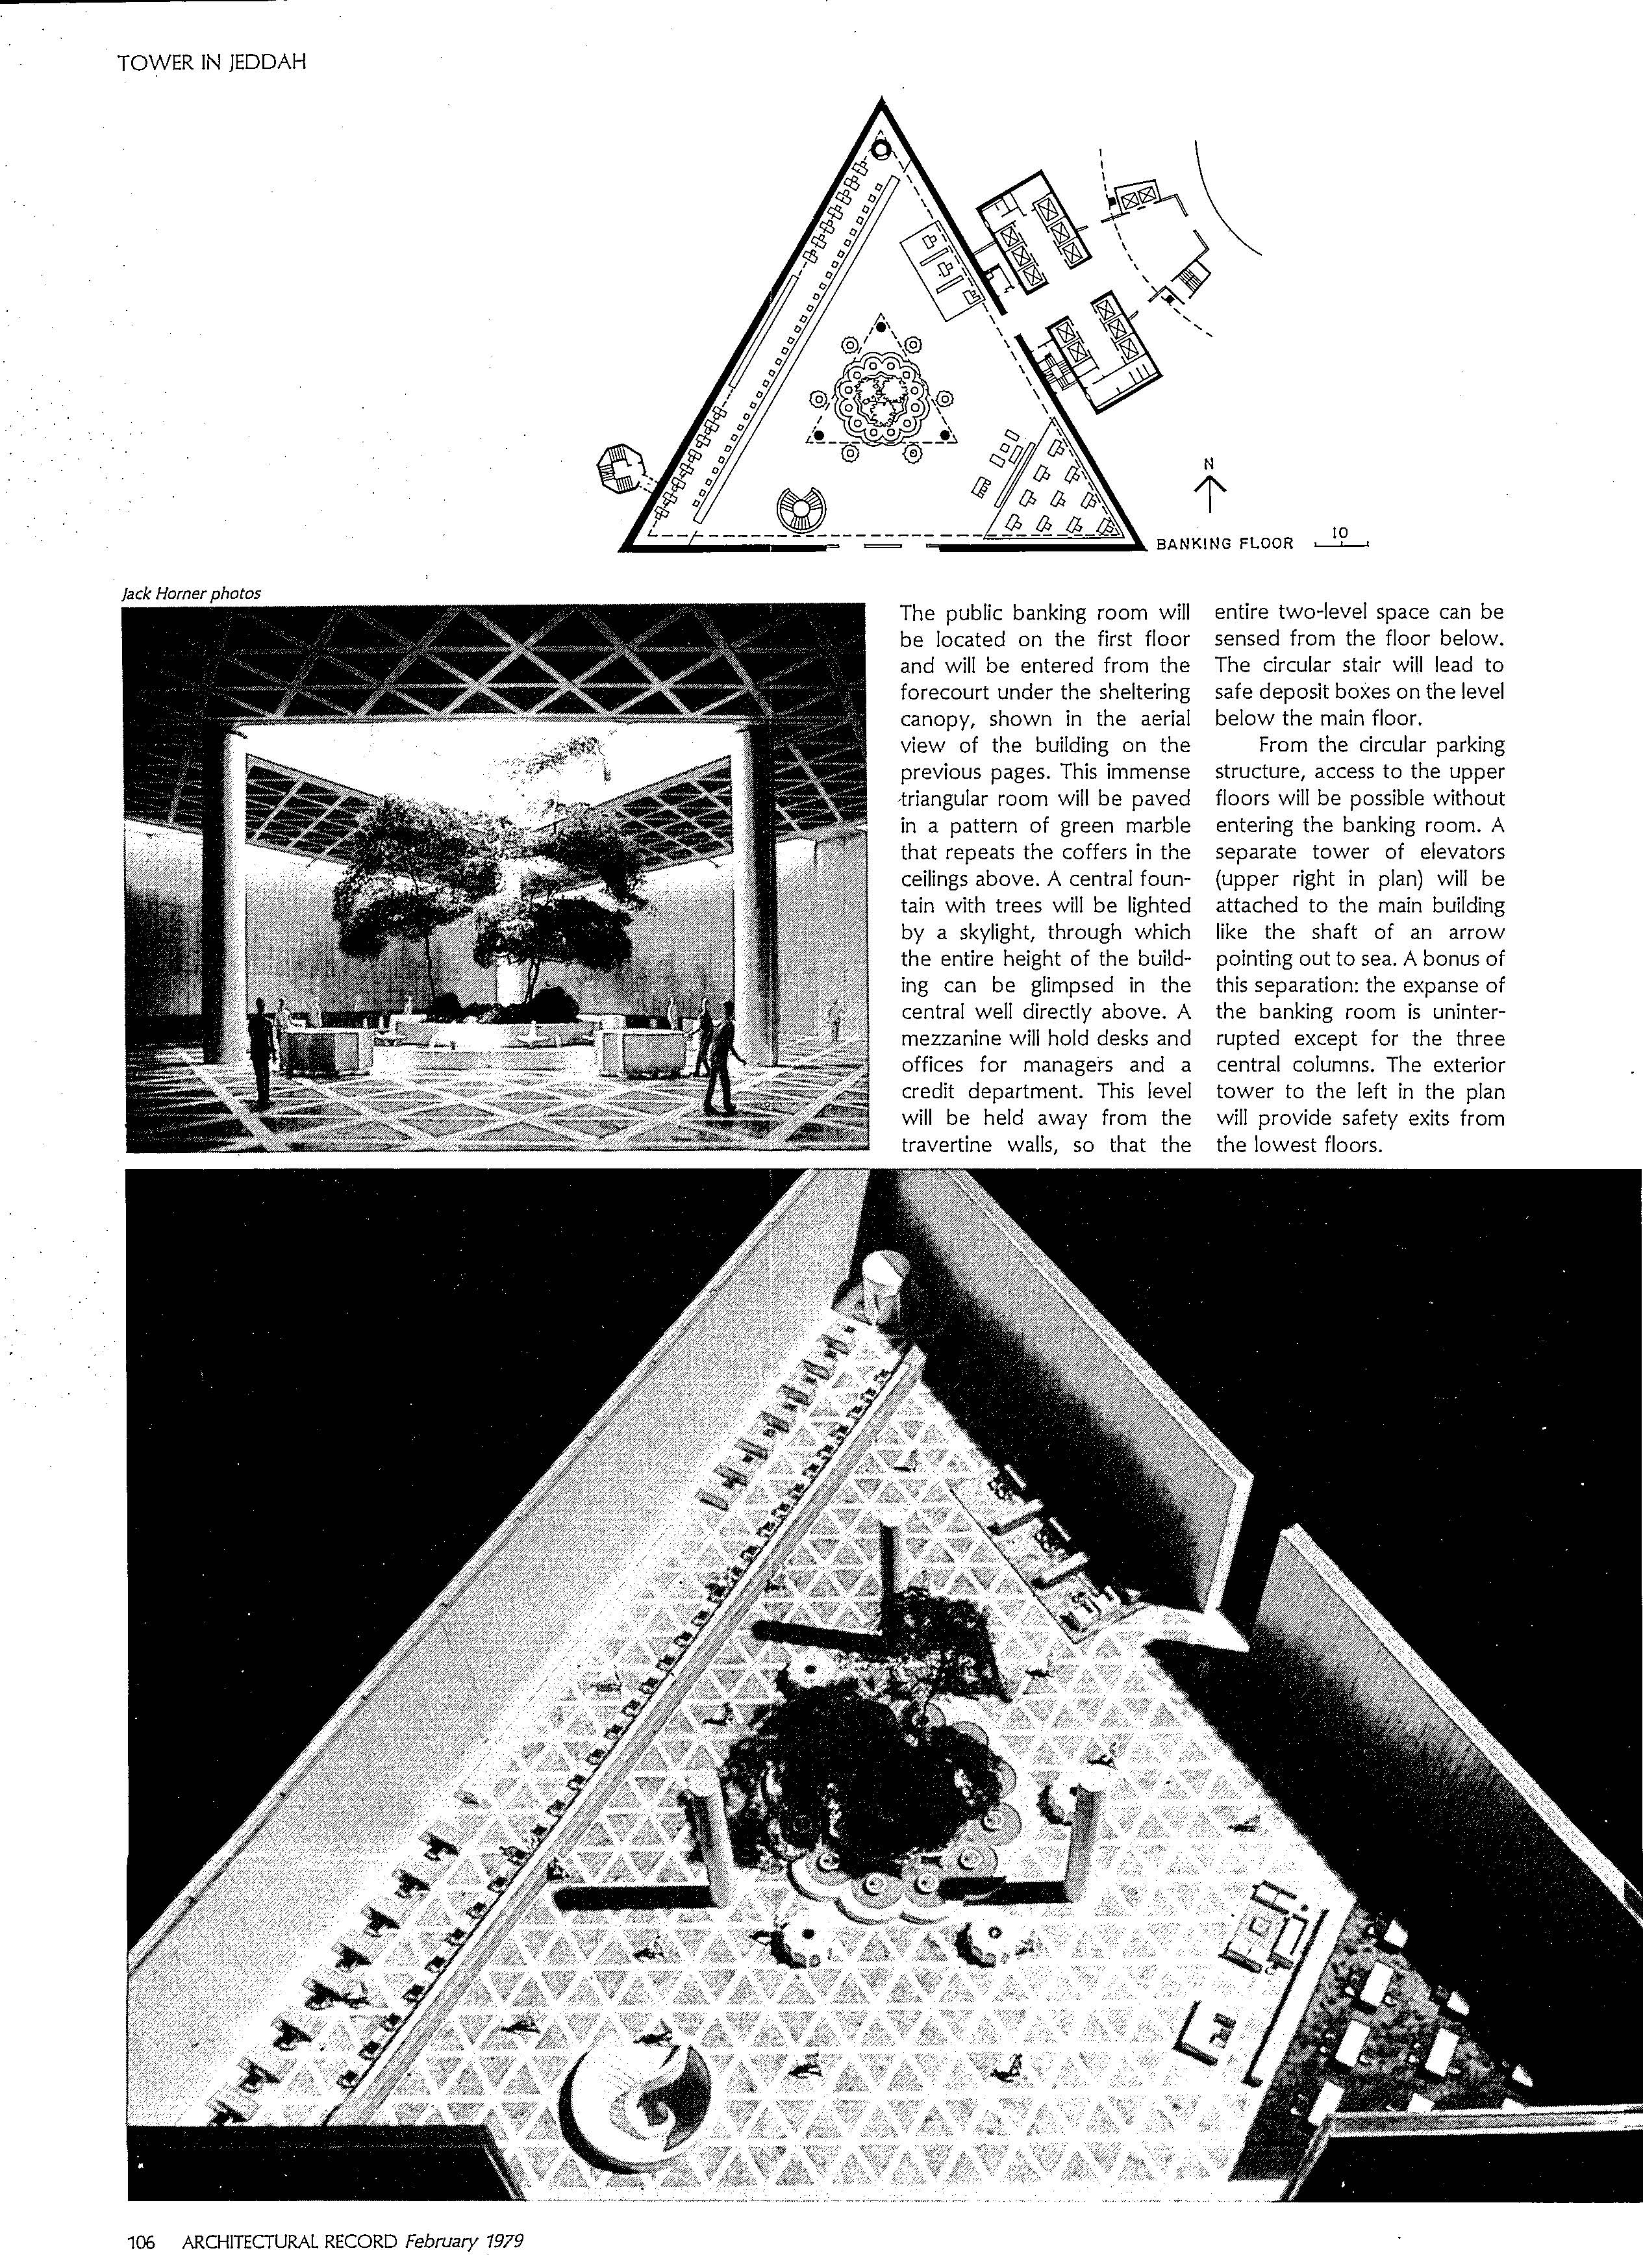 SOM New Tower in Jeddah_ from Architecture Record_1979-02-2_Page_5